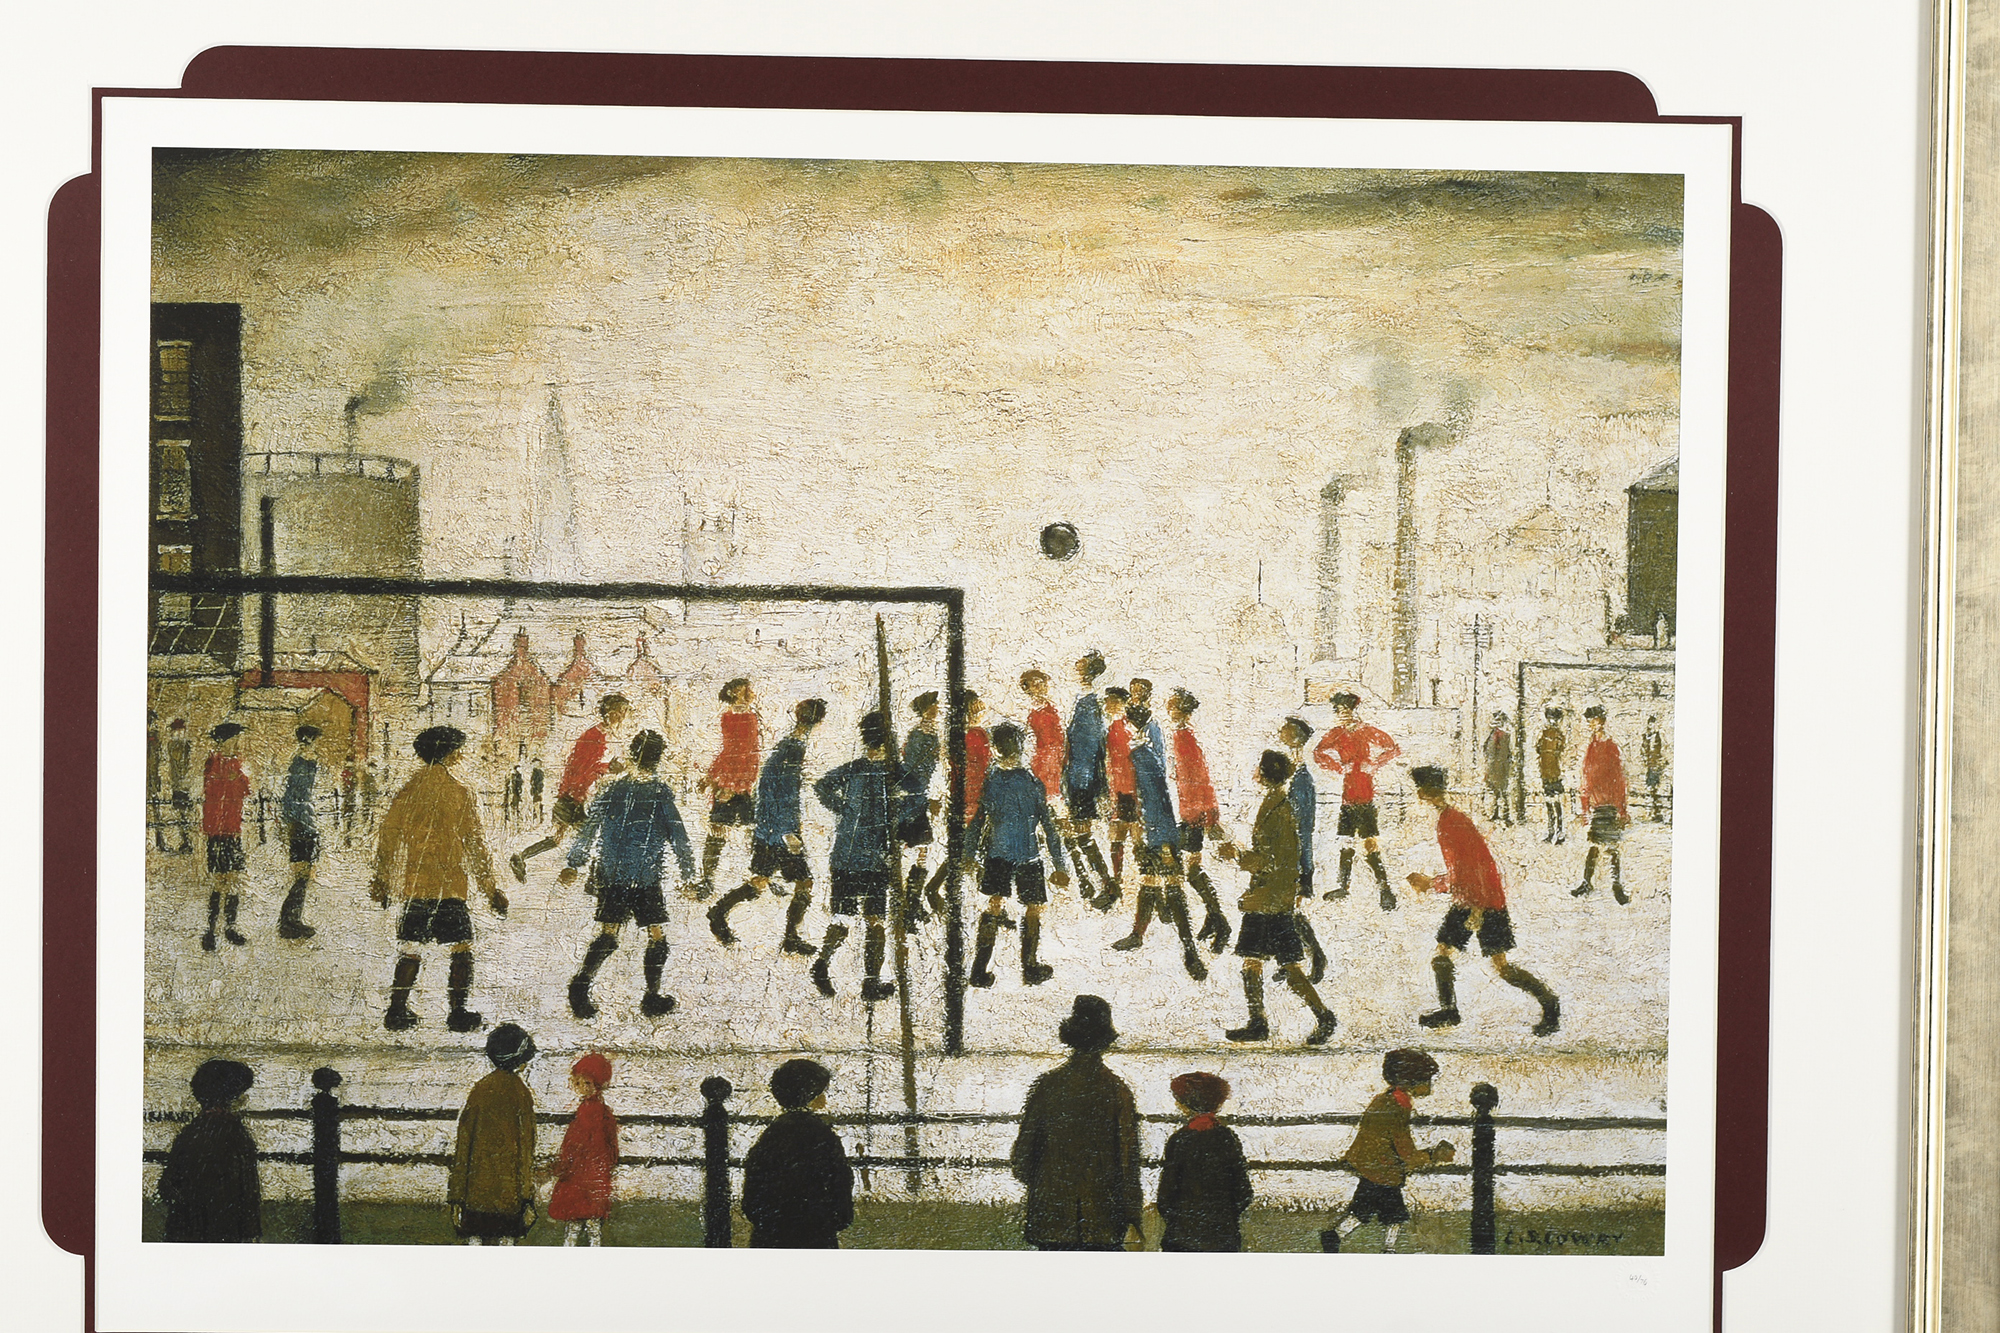 """Limited Edition by L.S. Lowry """"The Football Match"""" - Image 2 of 8"""